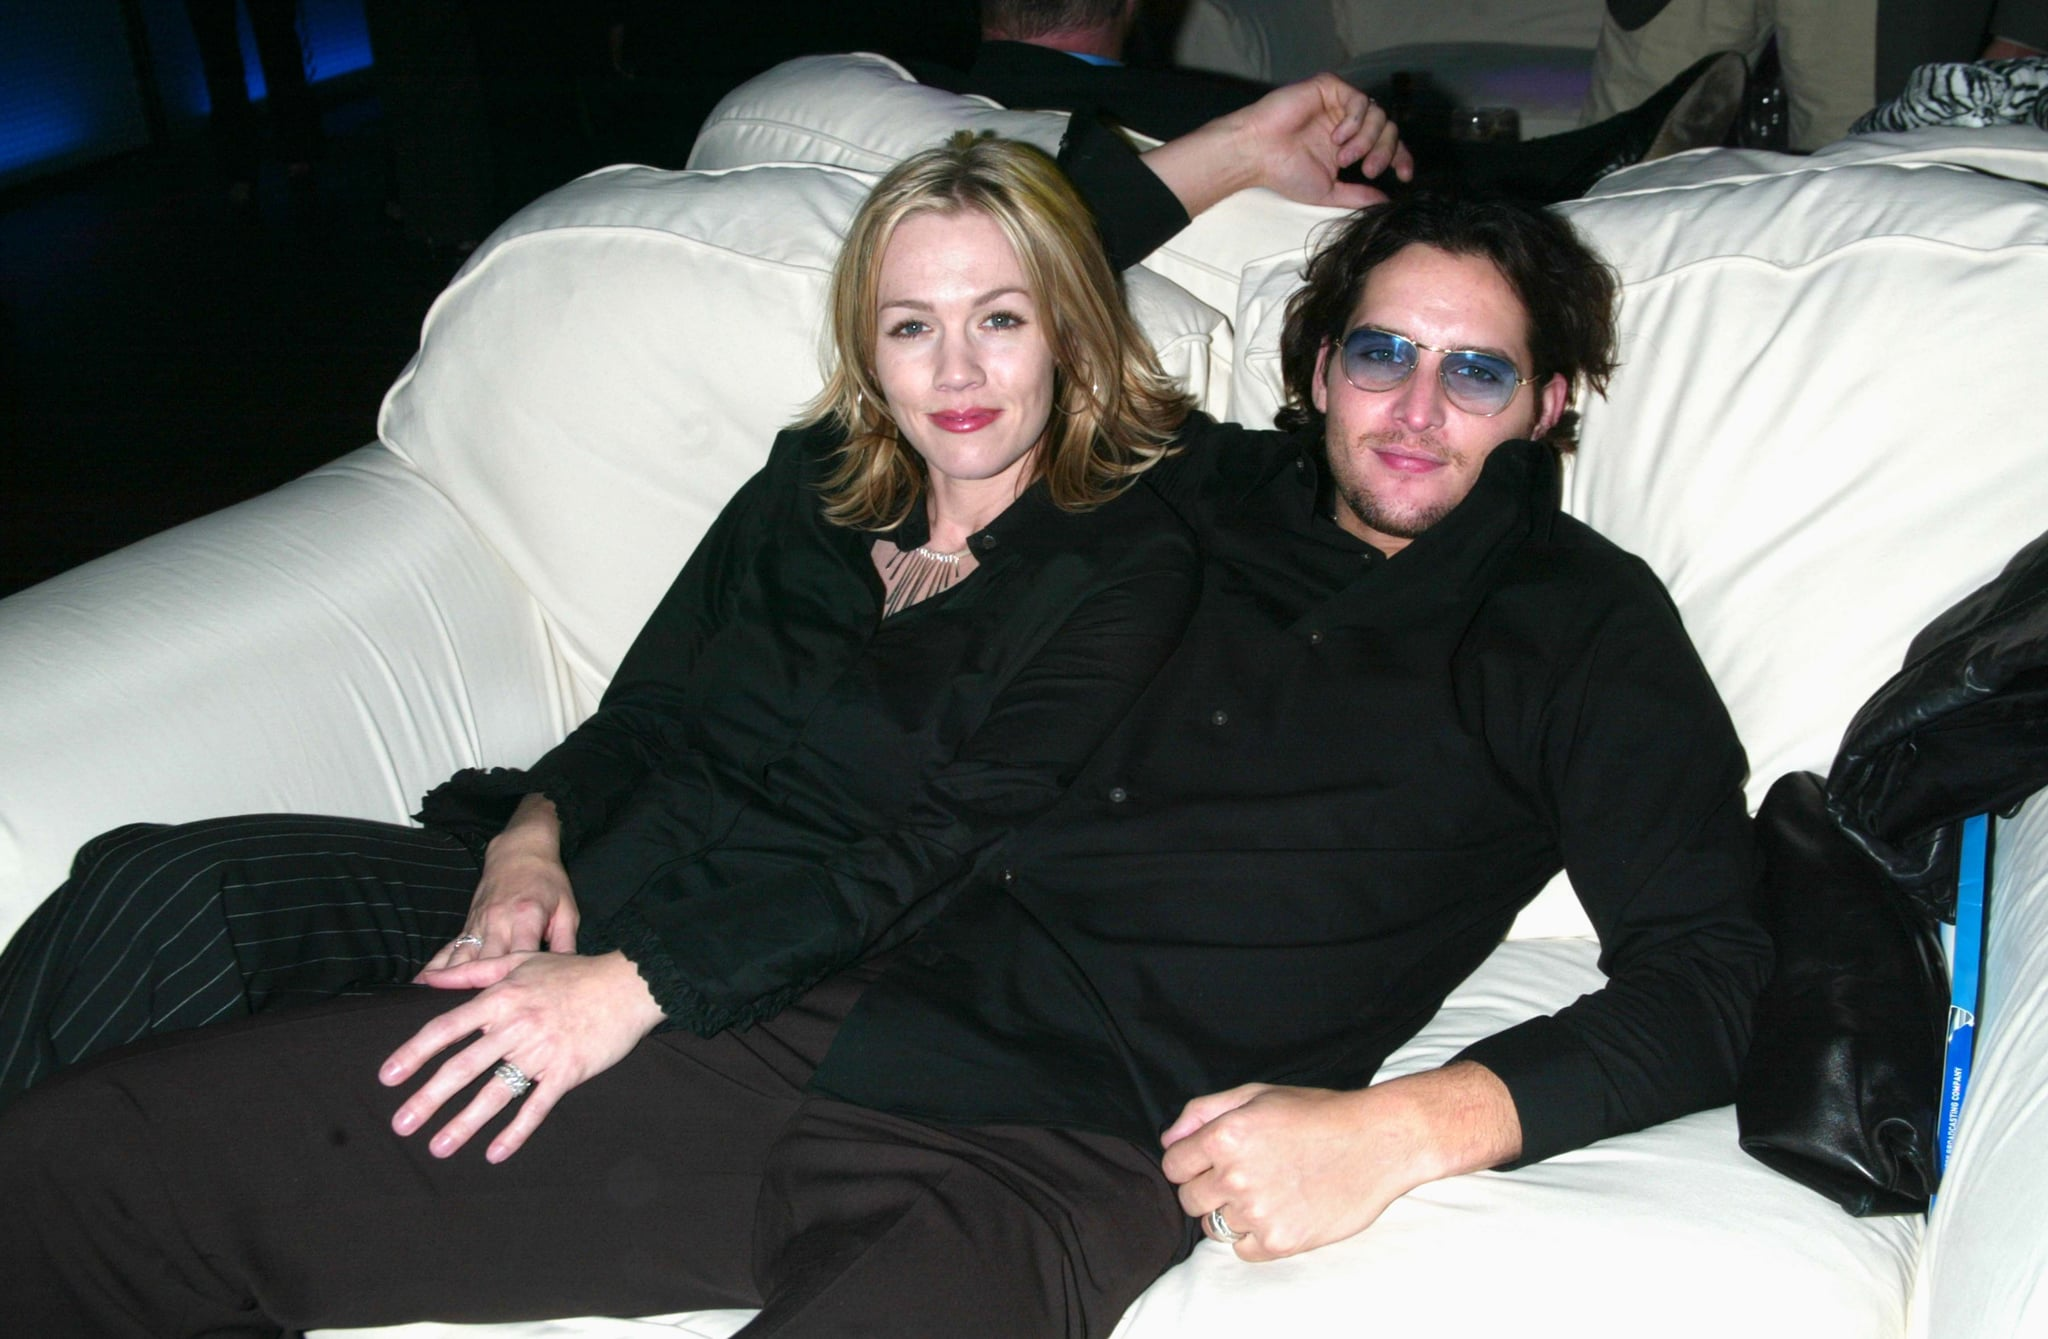 In May 2002, Peter Facinelli and Jennie Garth hung out at Fox's 2002-2003 Upfront Party in NYC.